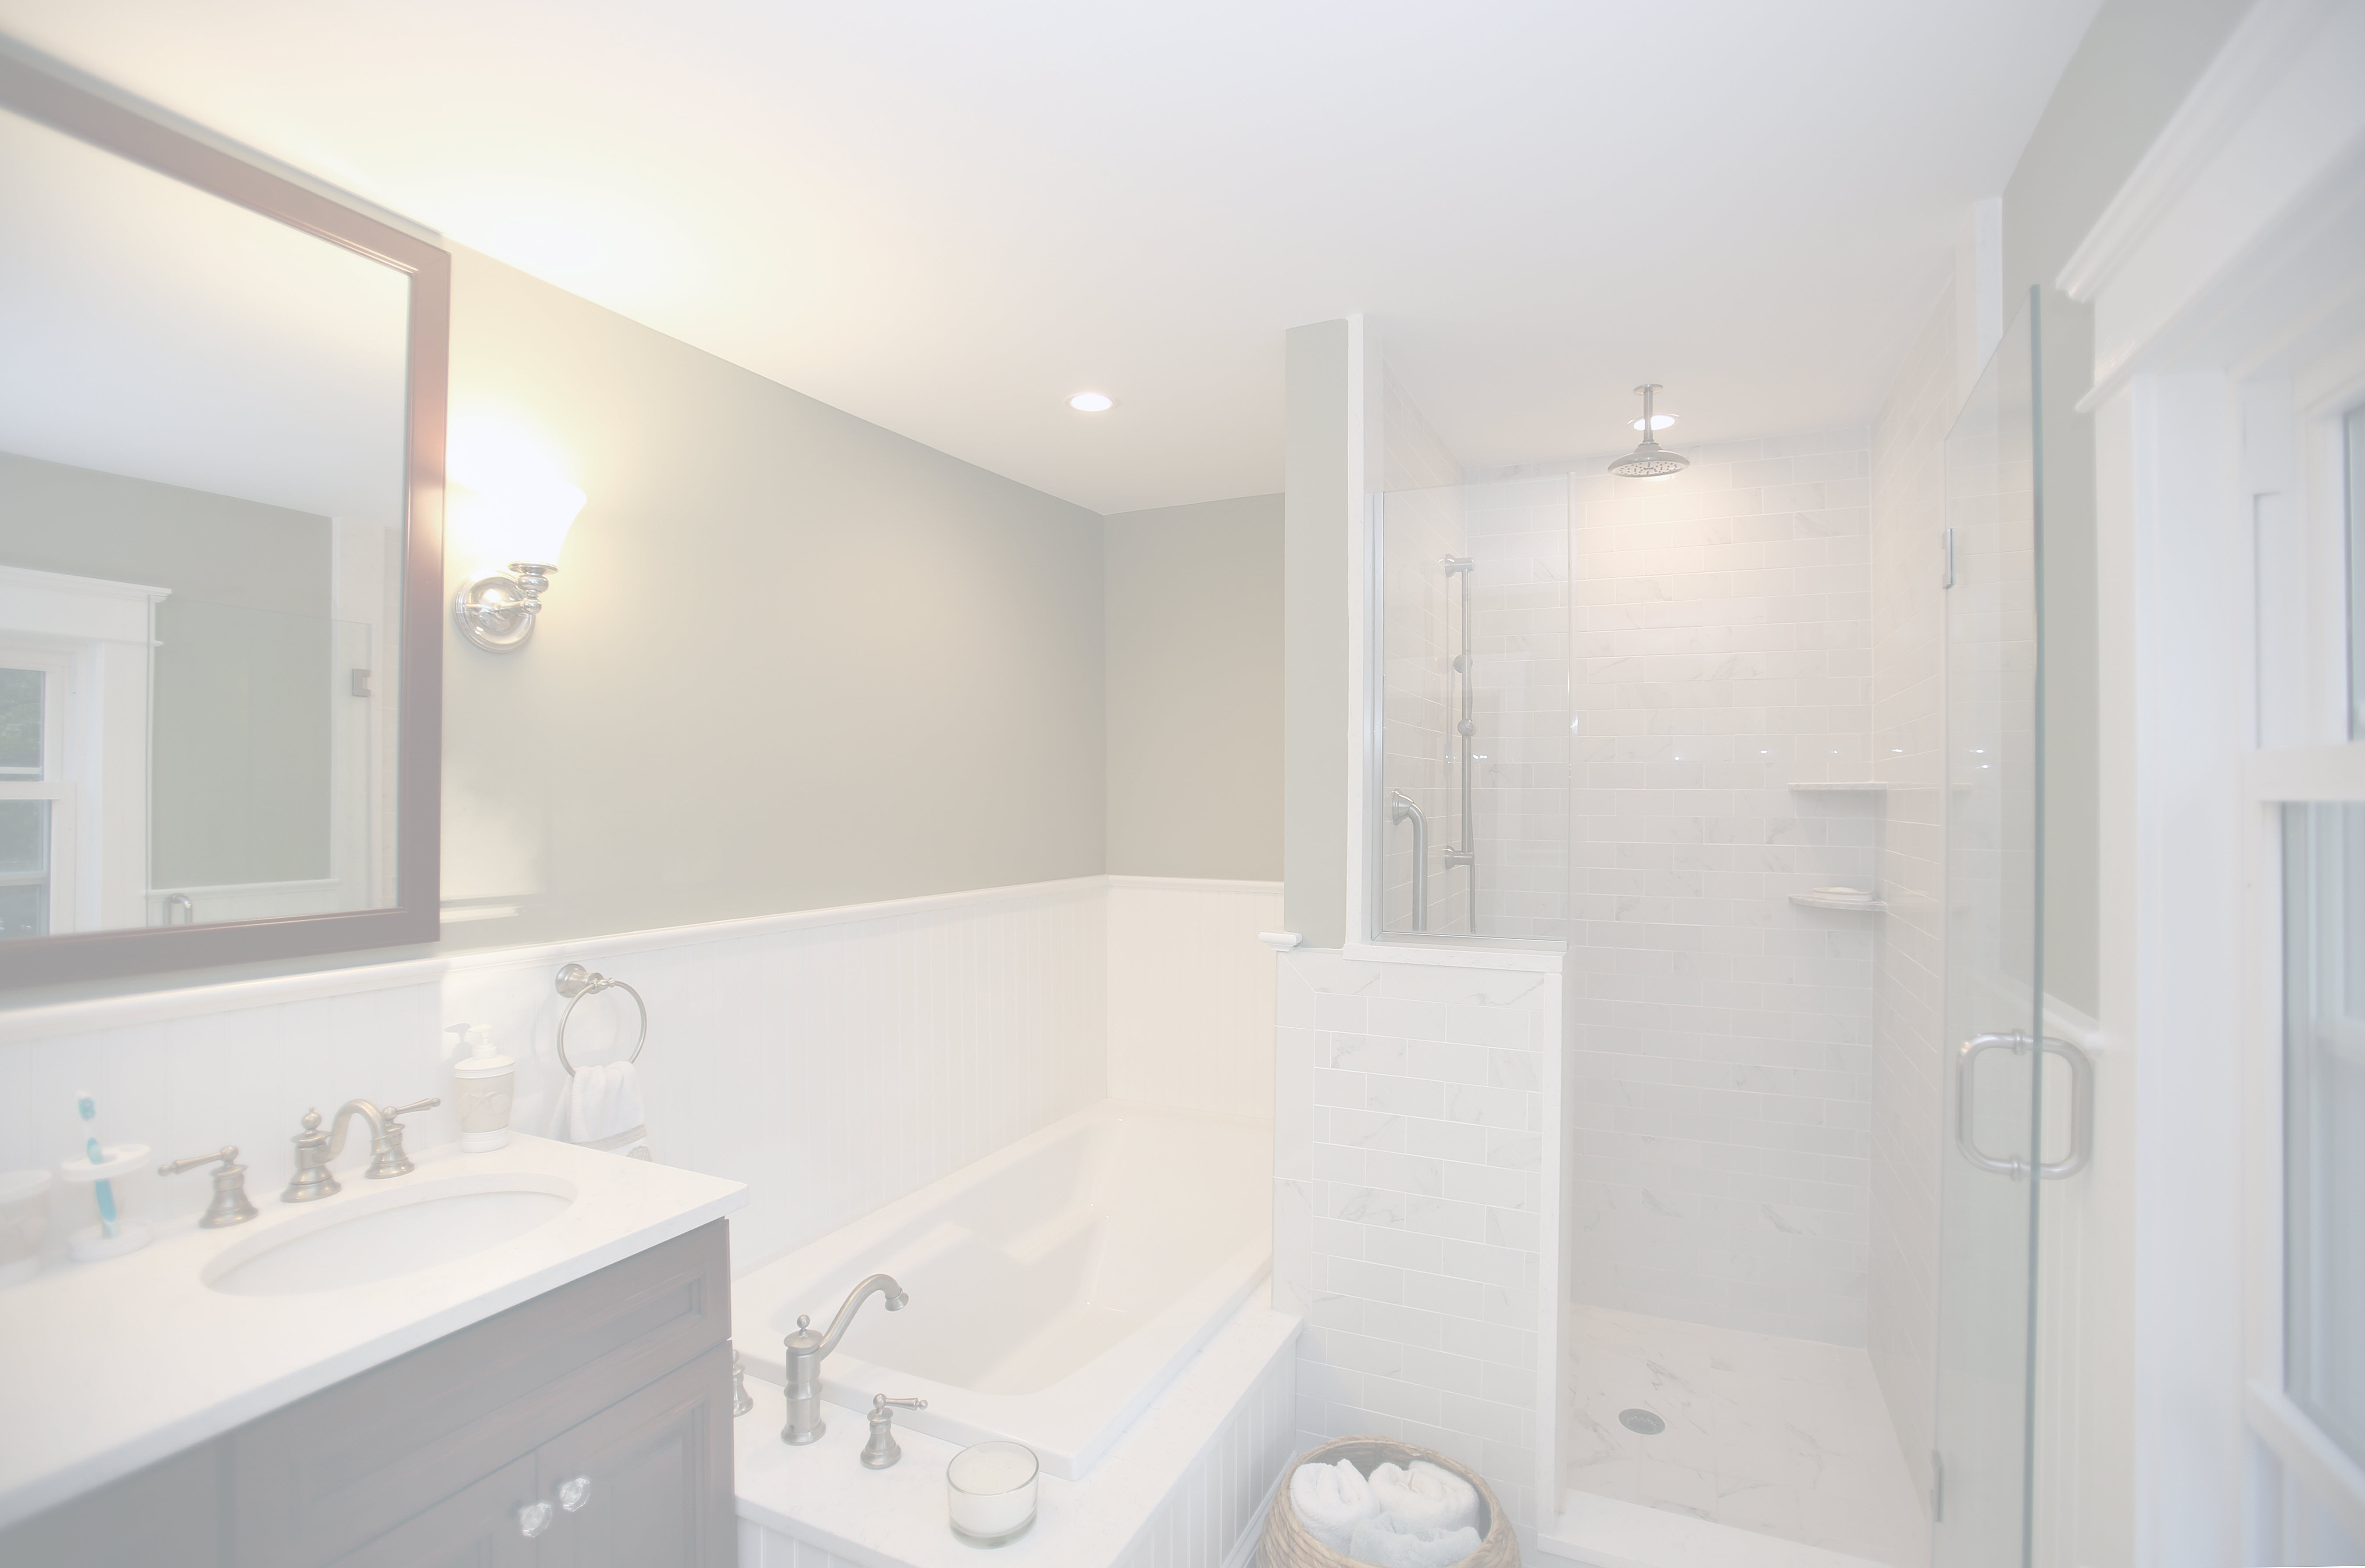 bathroom remodeling guide for long island ny residents by kuhn